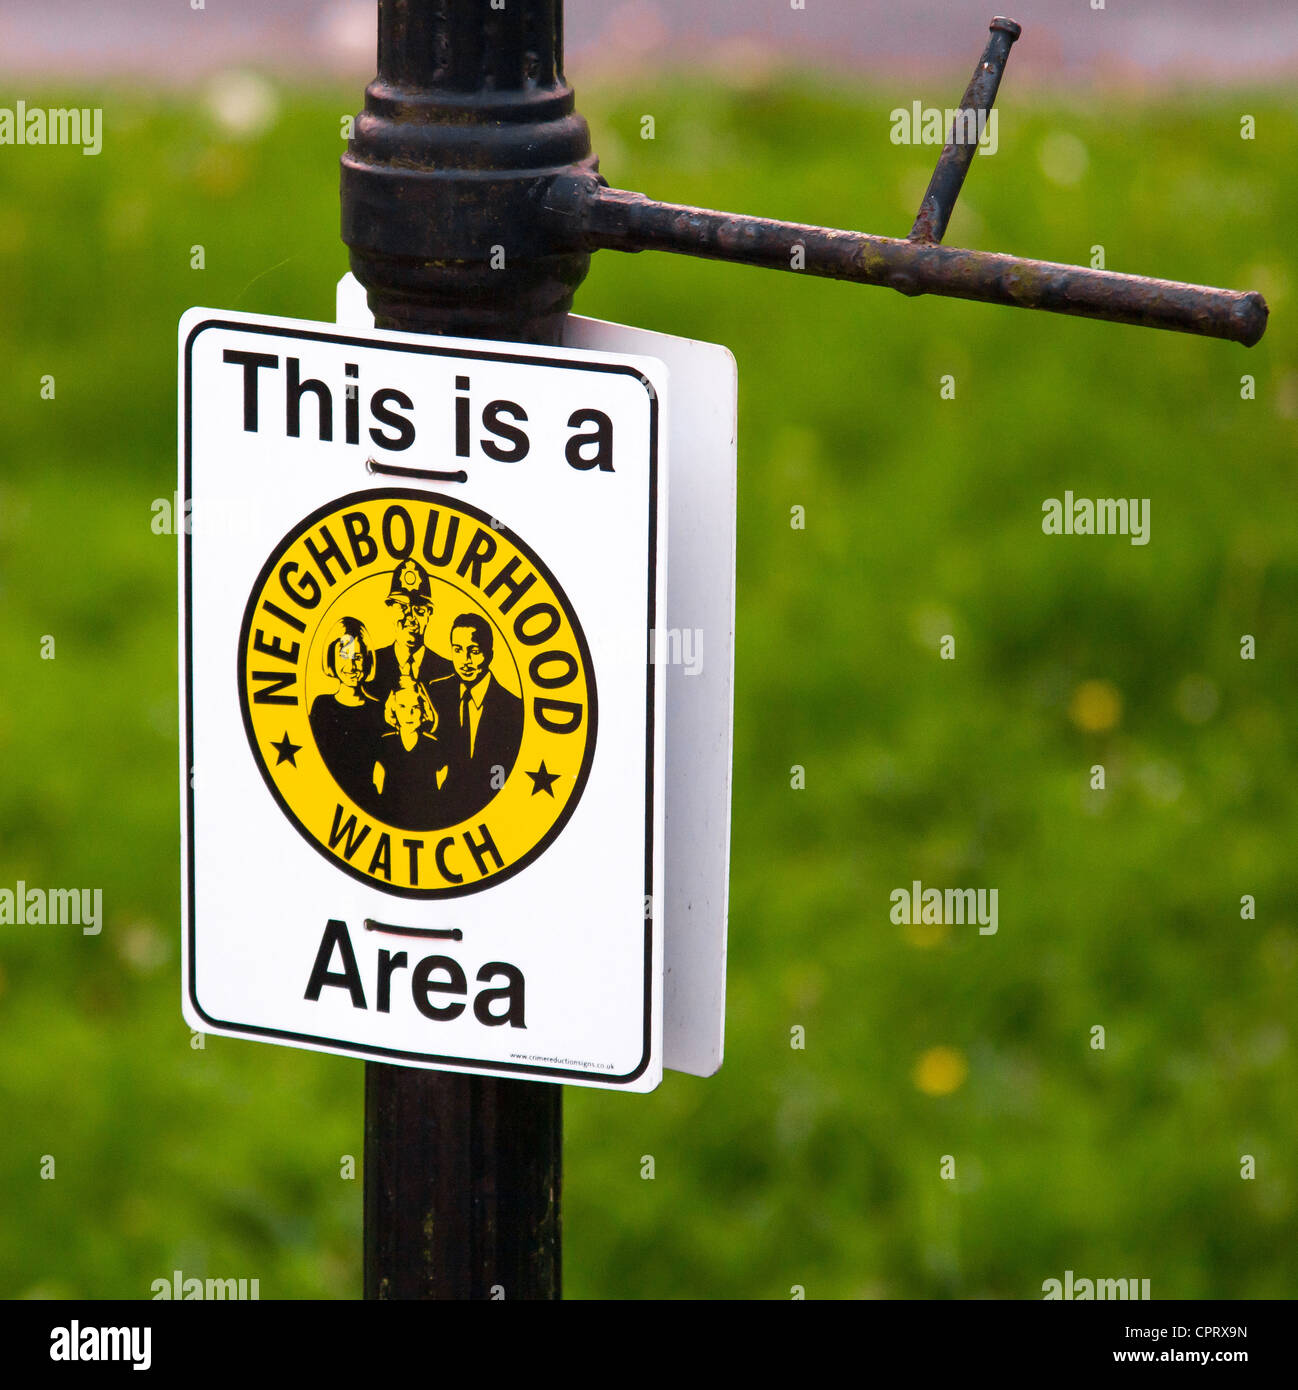 Neighbourhood Watch Area sign attached to a Victorian lamp post in a residential street UK - Stock Image